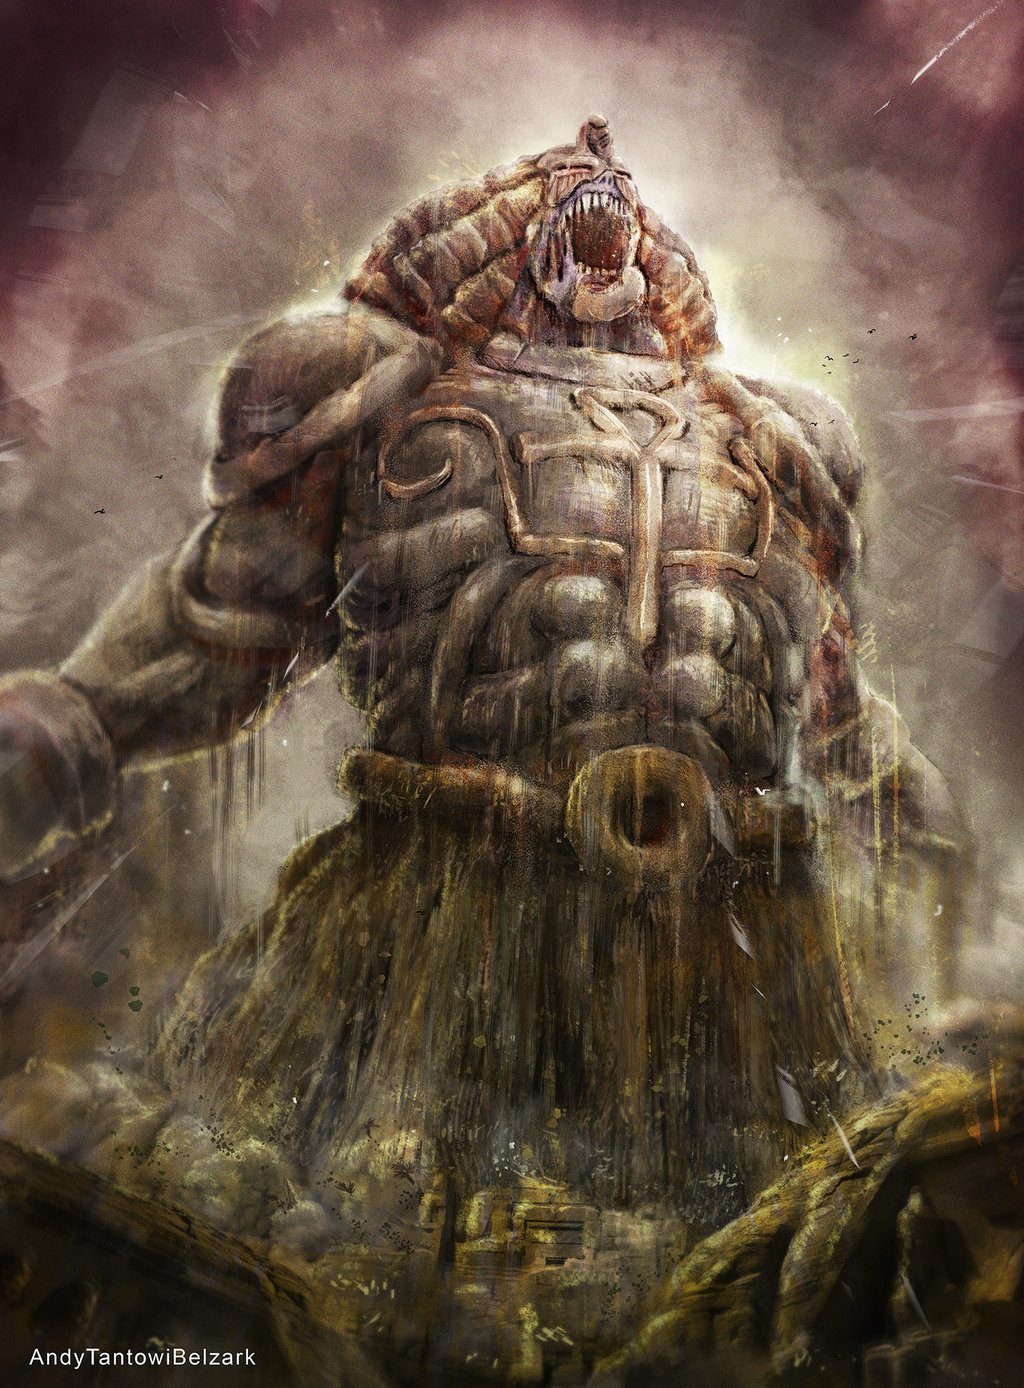 e926 abs ambiguous_gender andybelzark ankh egyptian_clothing exodia front_view headdress hi_res humanoid macro muscular not_furry open_mouth roaring ruins sharp_teeth solo stone teeth yu-gi-oh